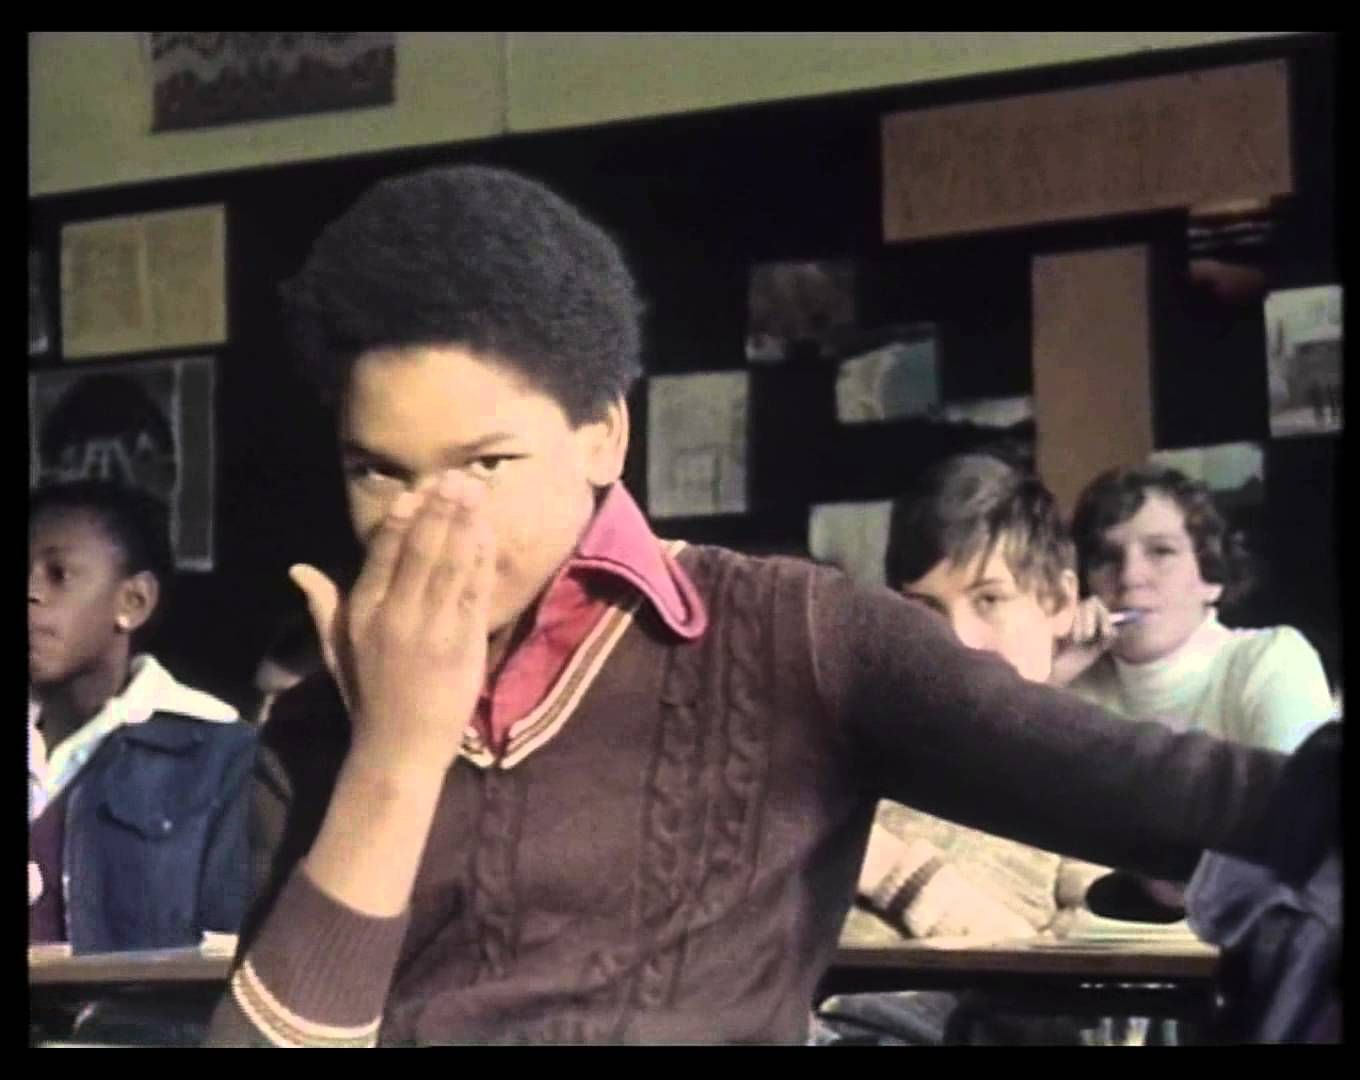 Panorama - The Best Days.  A 1977 BBC Panorama episode featuring a fly on the wall documenatary of life in a London Comprehensive School.  The film is introduced by David Dimbleby who invites to ask whether children really are experiencing their best days at school.  Claims to authenticity stem from footage of 'real' scenes.  We can contest these claims to authenticity and  consider whether a representation of reality is equivalent to the truth.